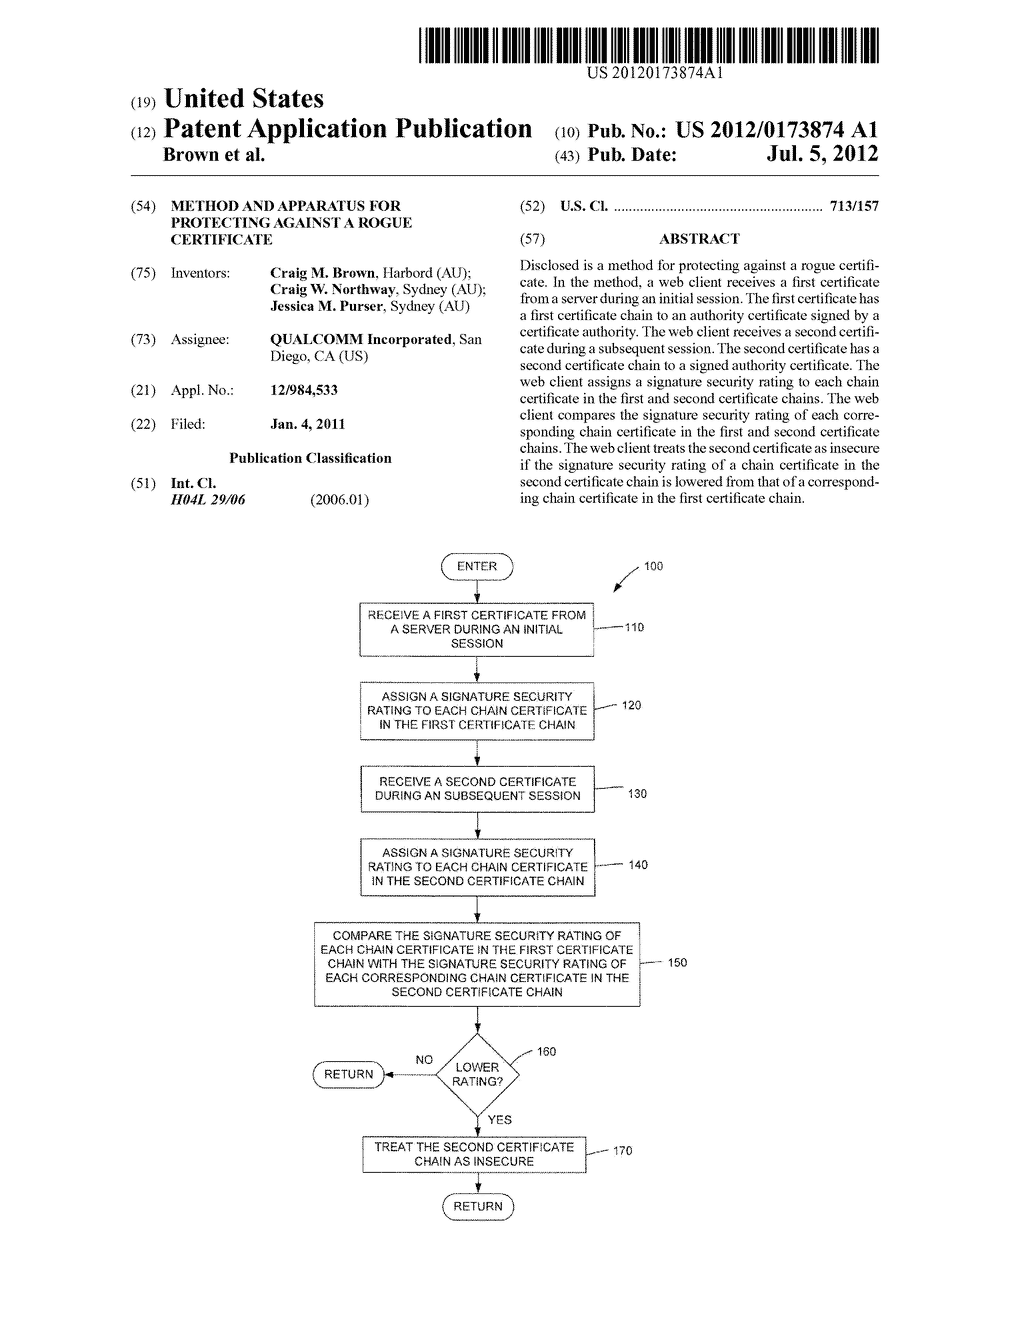 Method And Apparatus For Protecting Against A Rogue Certificate - diagram, schematic, and image 01